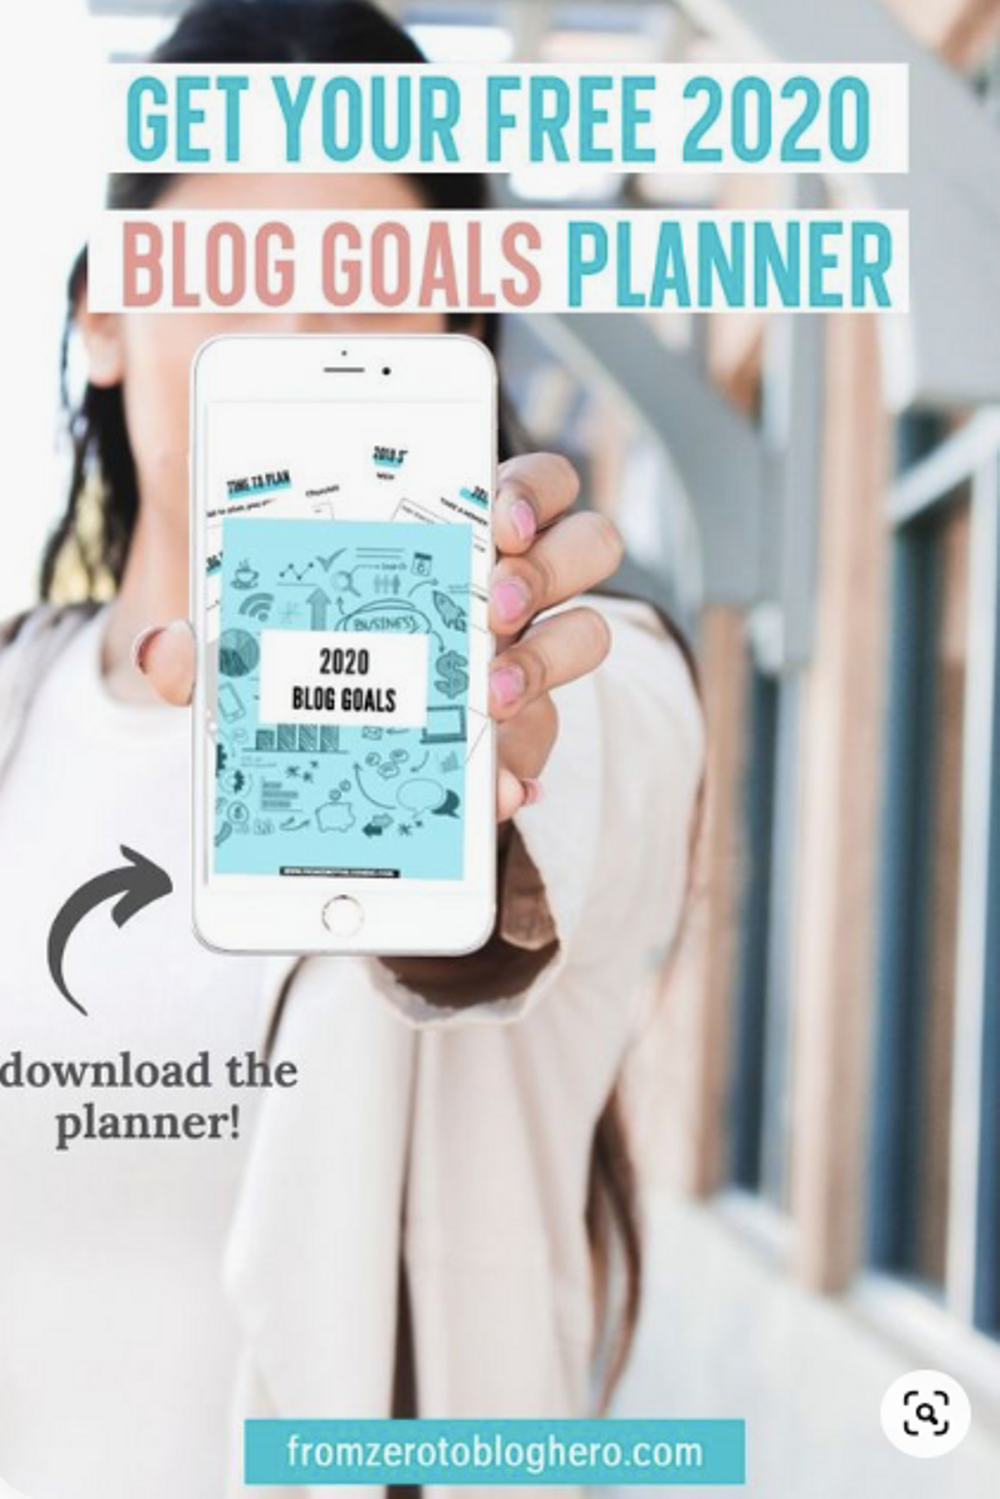 A sample pin we used to share our free 2020 goals planner